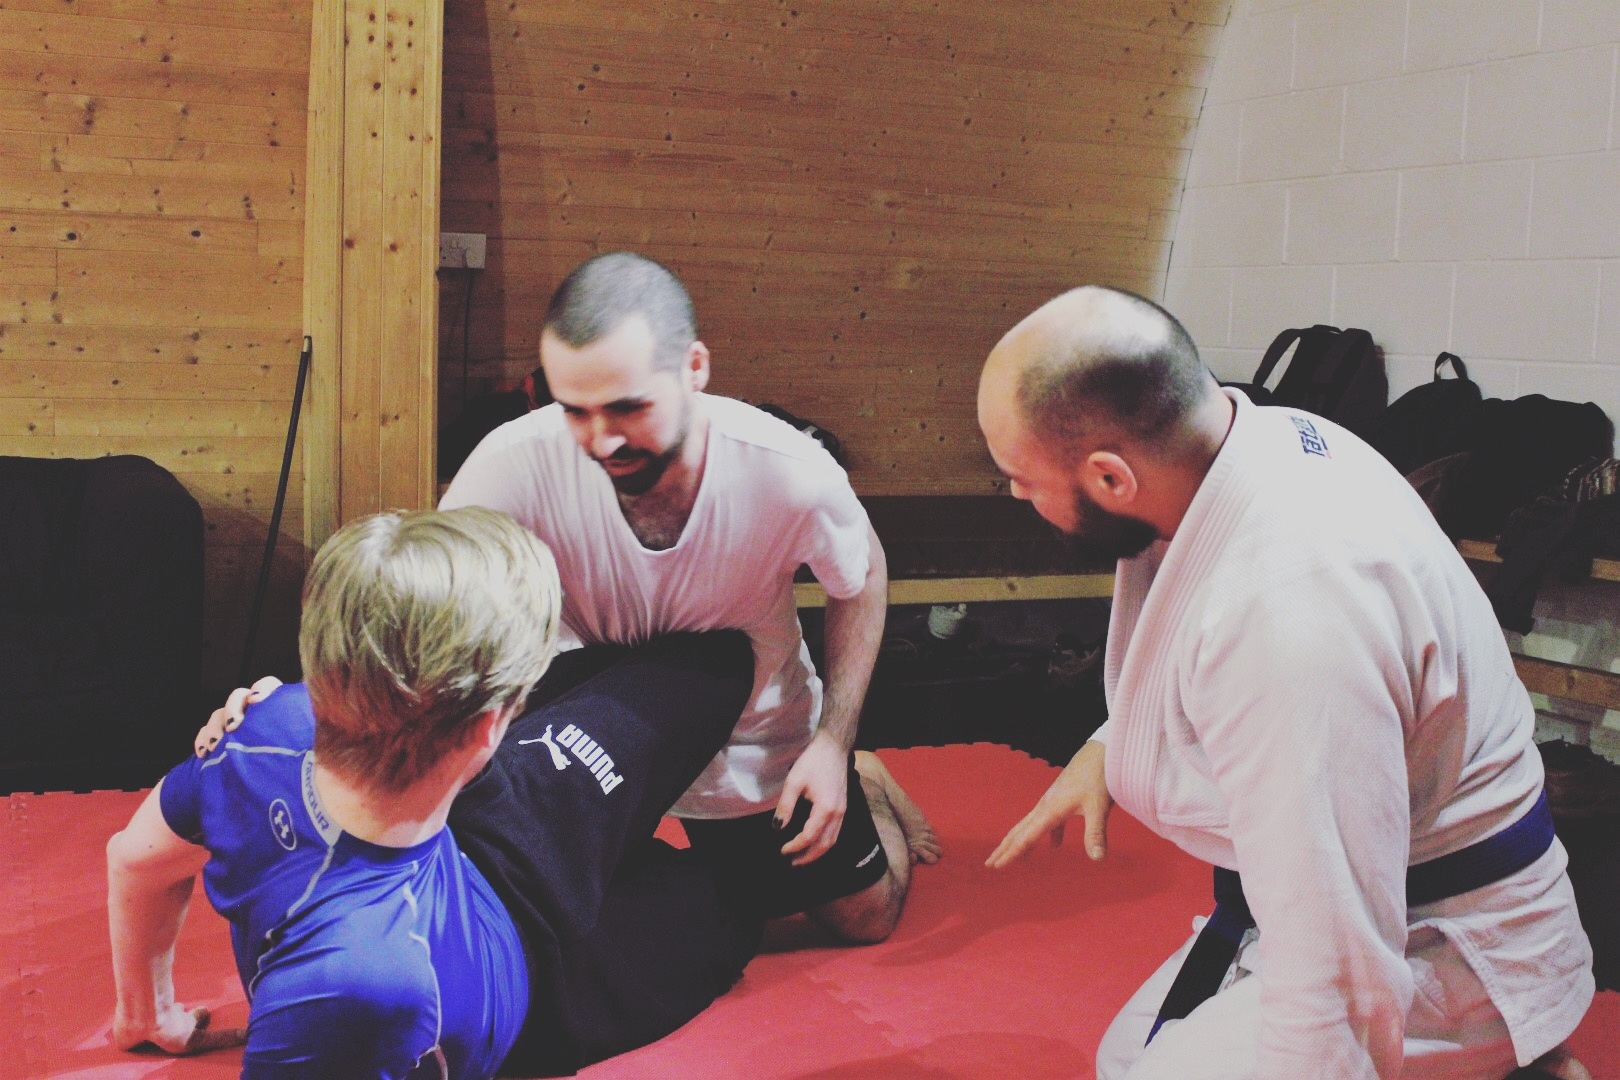 Brazilian Jiu Jitsu - Fundamentals - This class covers the core techniques of Brazilian Jiu Jitsu, you will also learn how to throwl and self defence techniques as well. This is a great starting point for beginners or if you want to brush up on the basics.